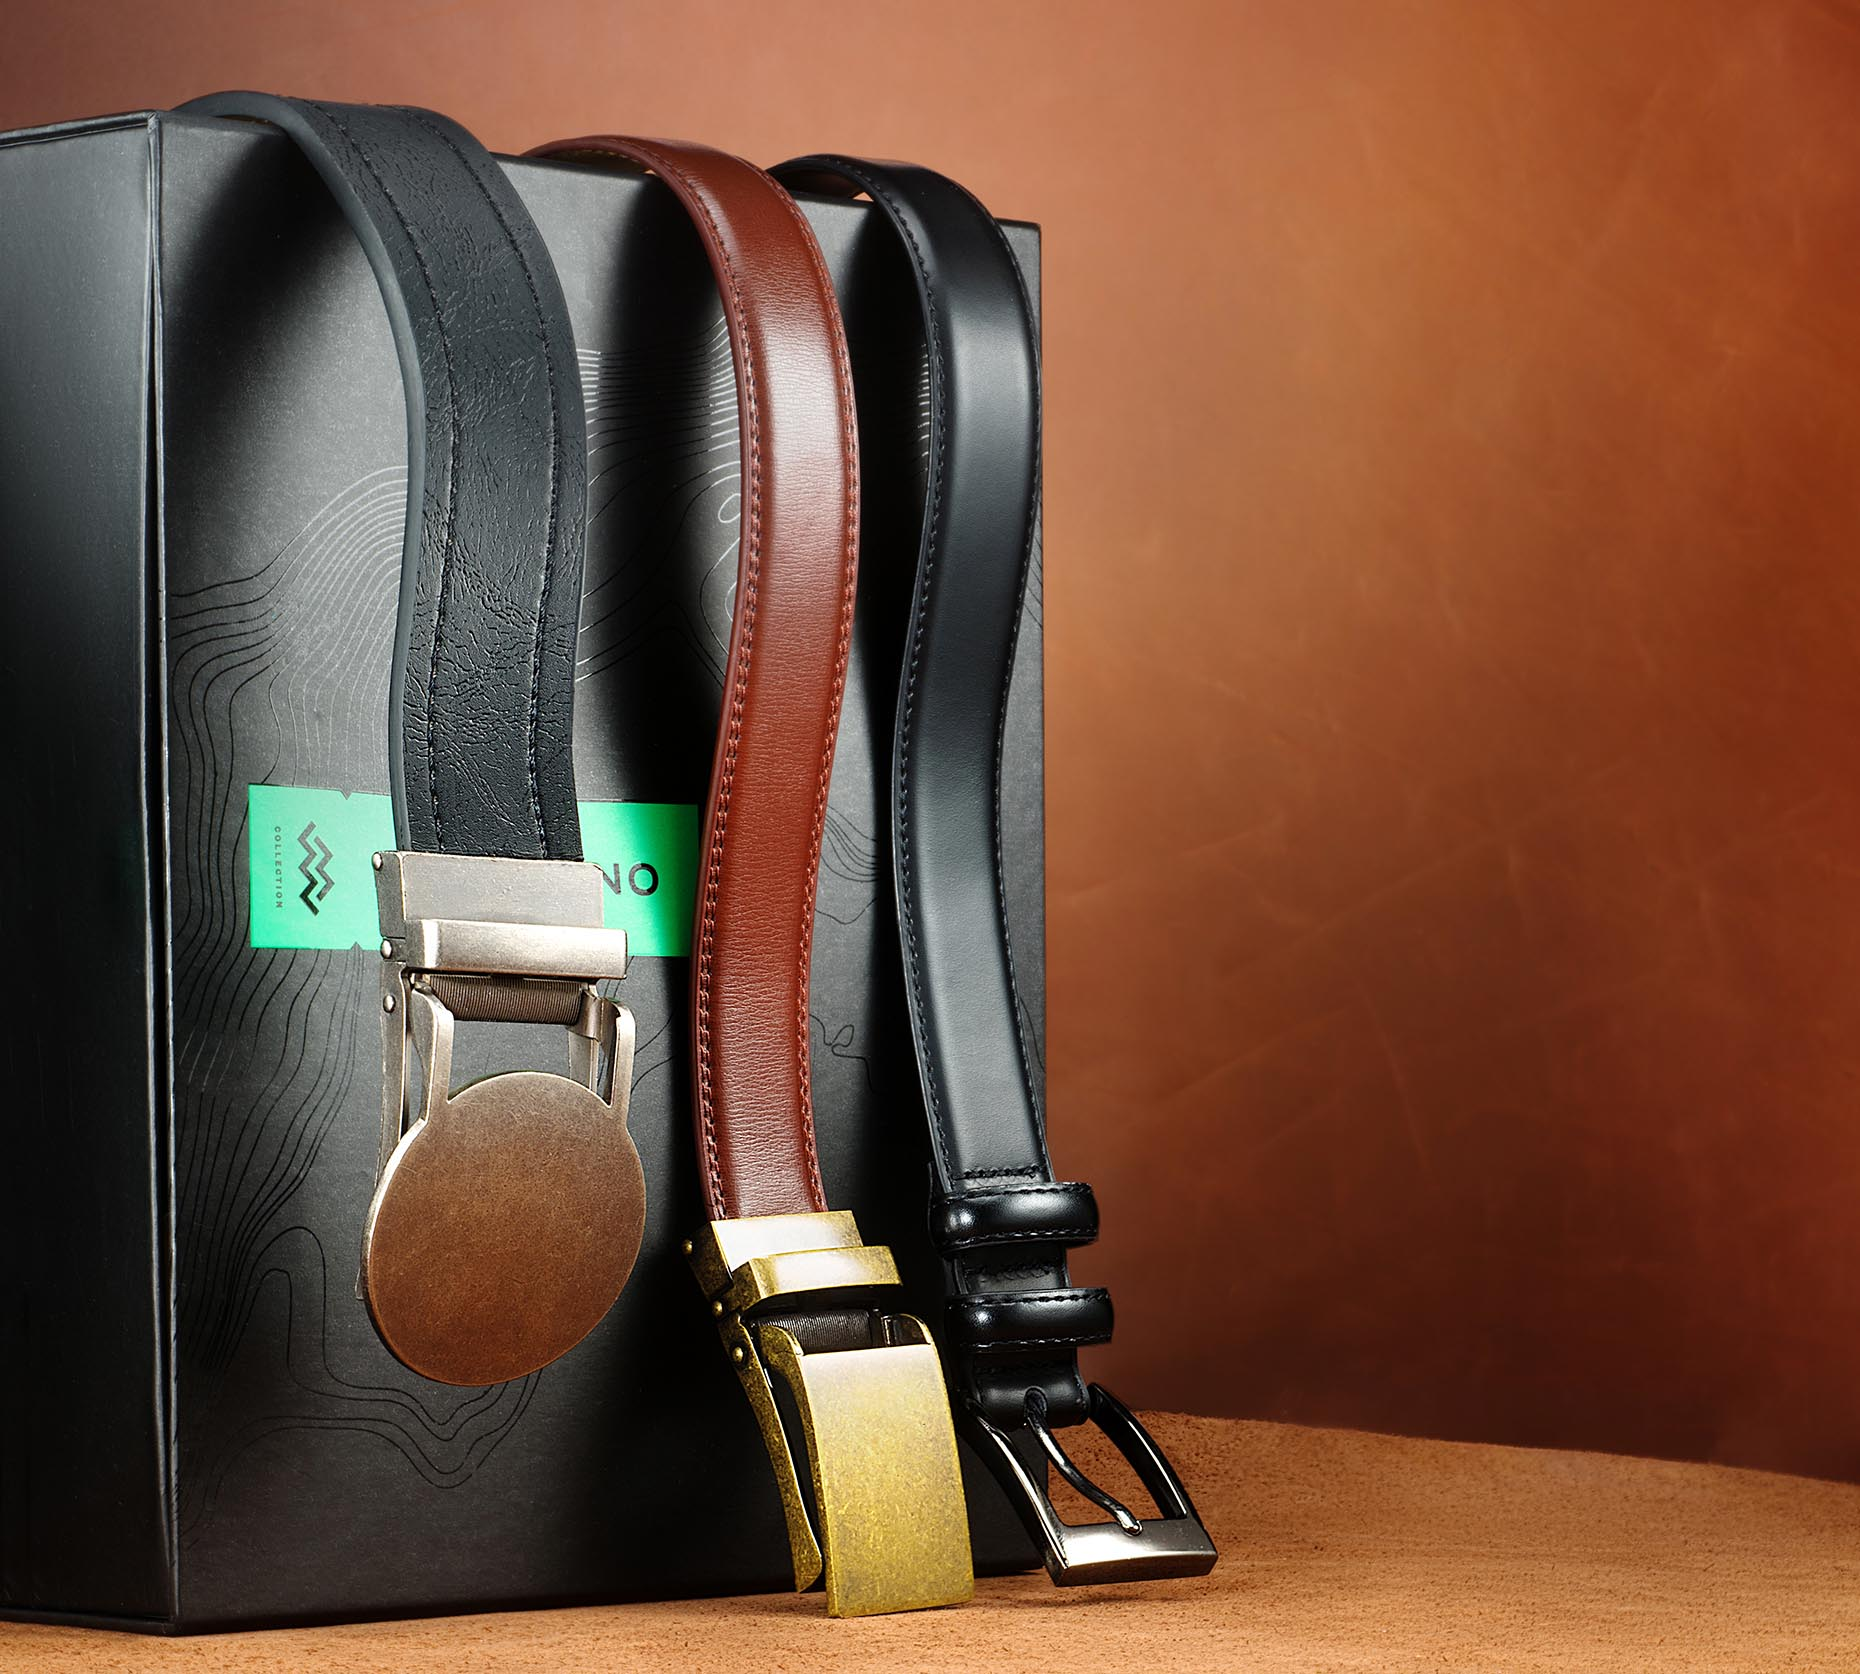 New-york-fashion-still-life-photography-belts